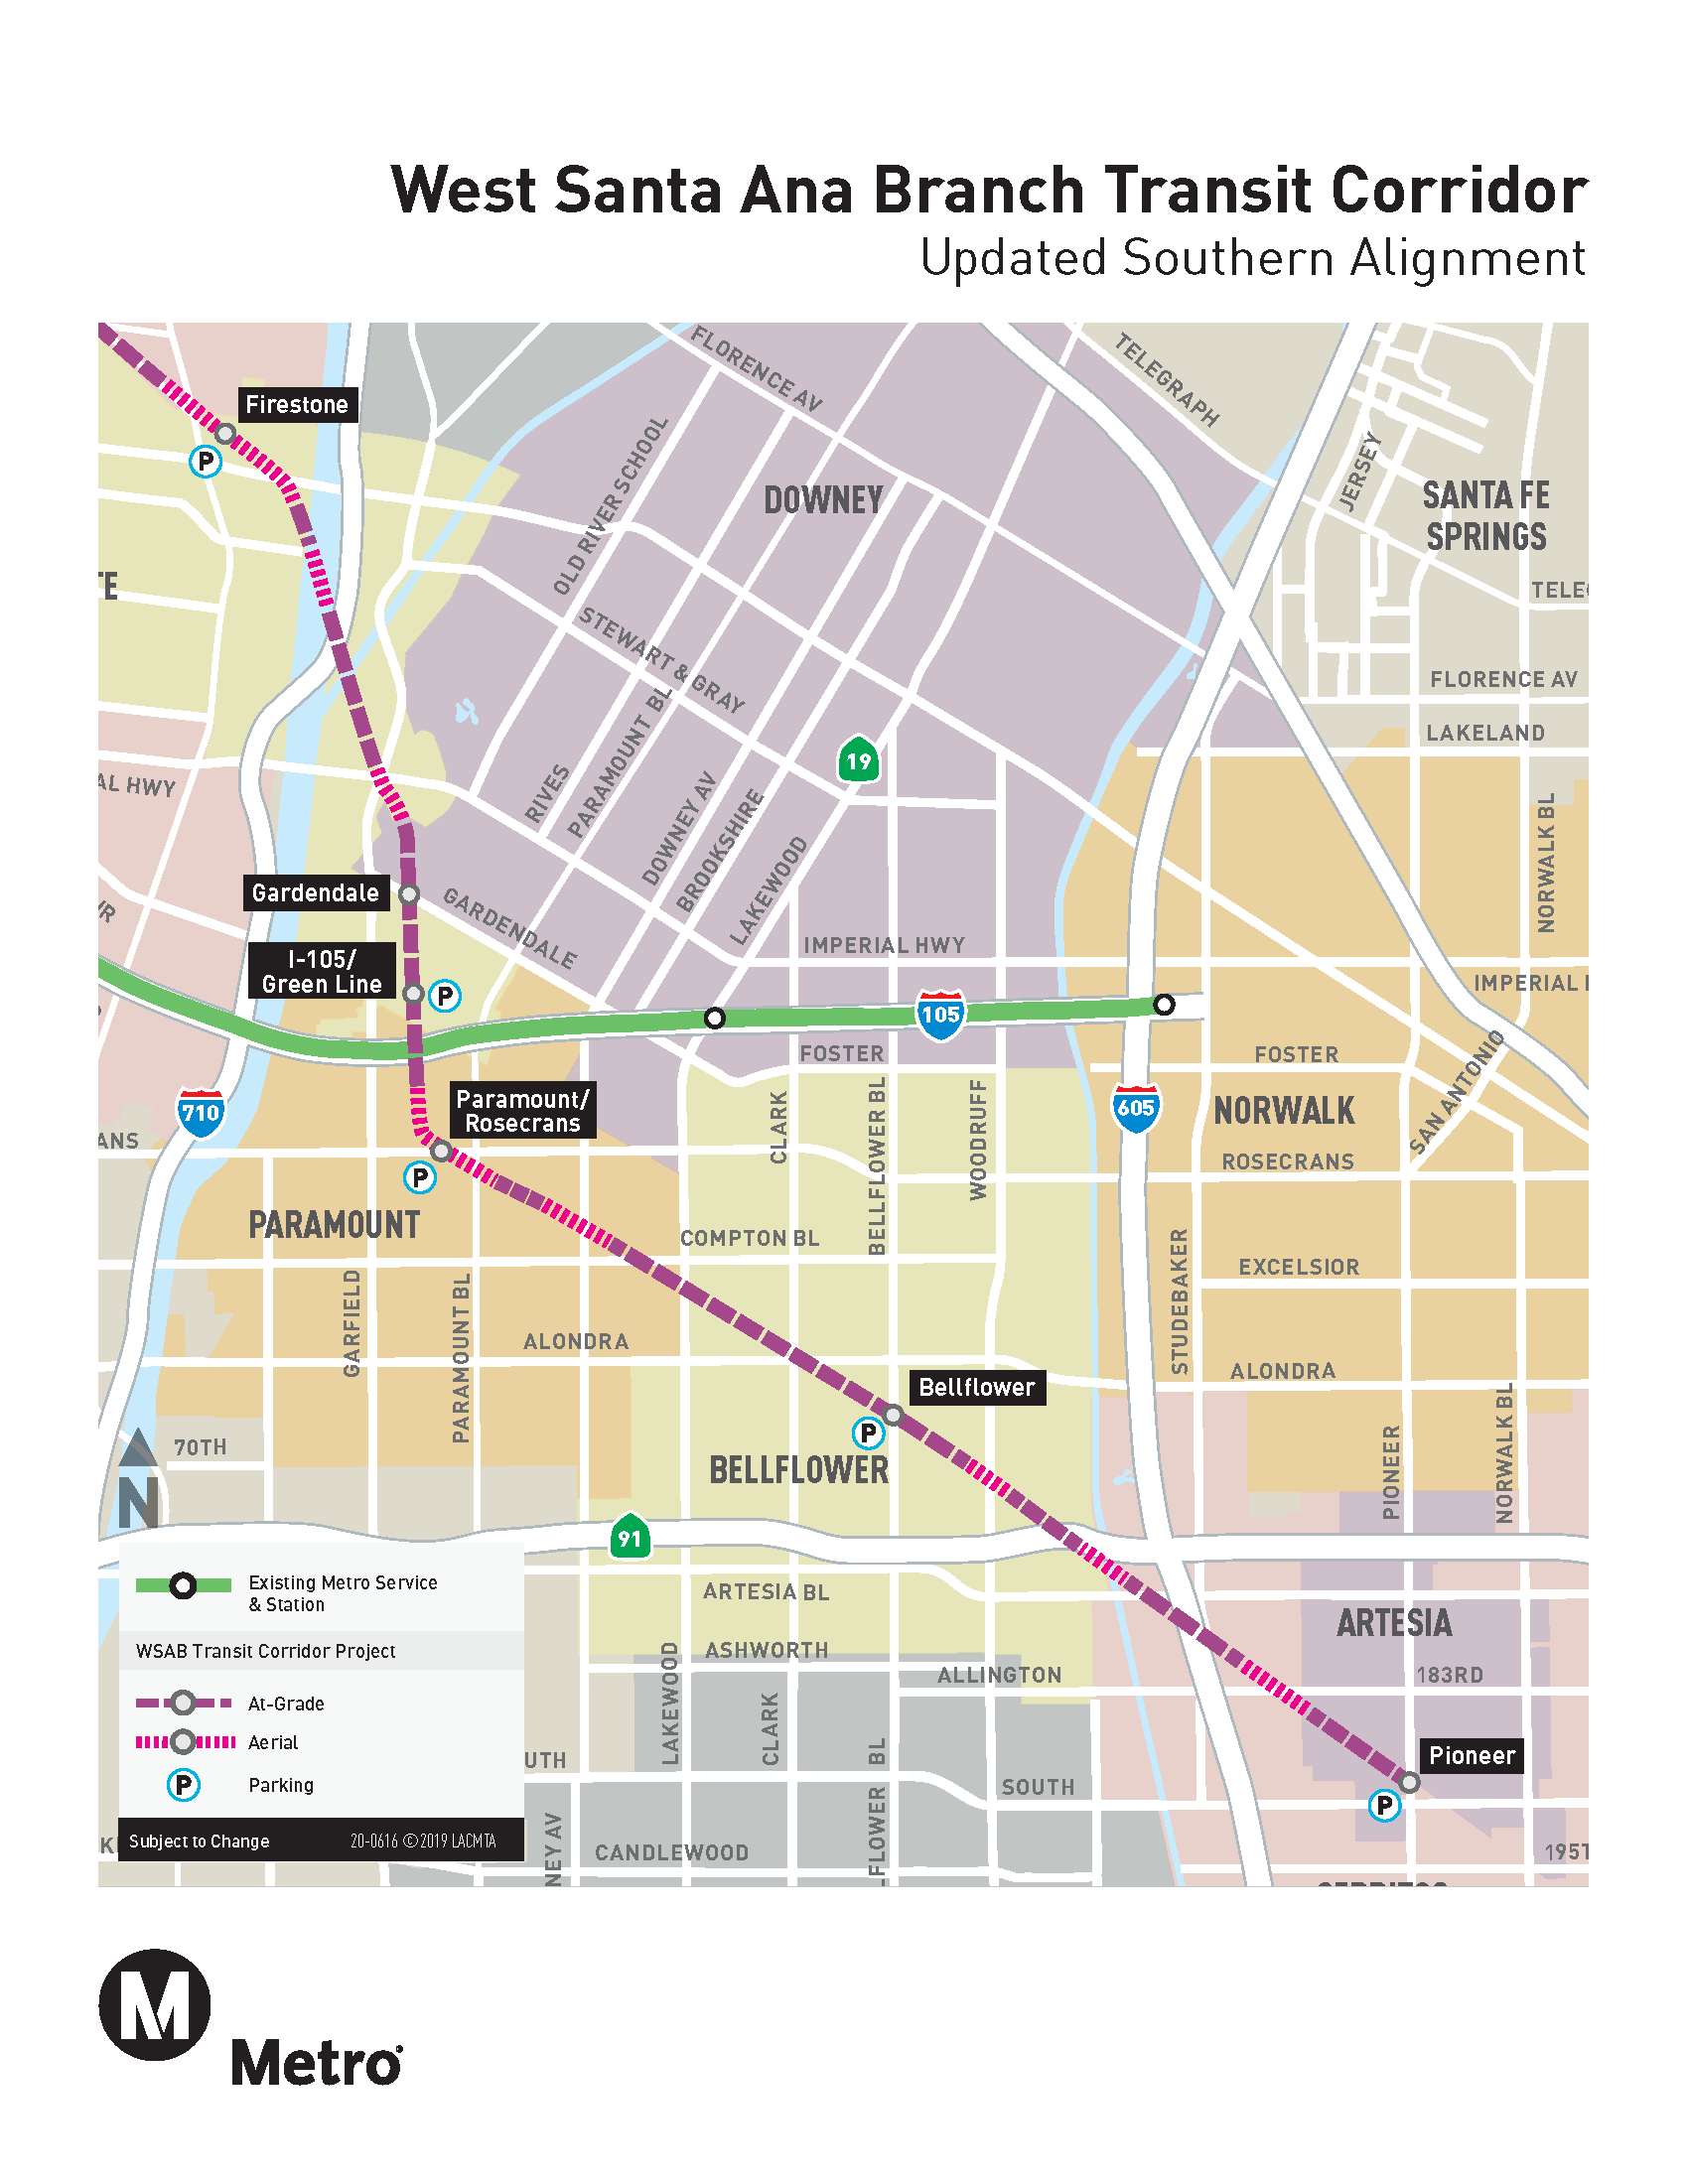 West Santa Ana nch Transit Corridor on map of downtown fremont, map of downtown california, map of downtown summerlin, map of sw bakersfield ca, map of downtown oakland ca, map of downtown el segundo, map of downtown oceanside, map of downtown del mar, map of downtown las vegas strip, map of downtown cabo san lucas, map of downtown san luis obispo, map of downtown cambria ca, map of downtown seaside, map of eastside, map of santa ana ca, map of santa ana winds, map of santa ana college, map of downtown san clemente, map of downtown florida, map of downtown san juan capistrano,